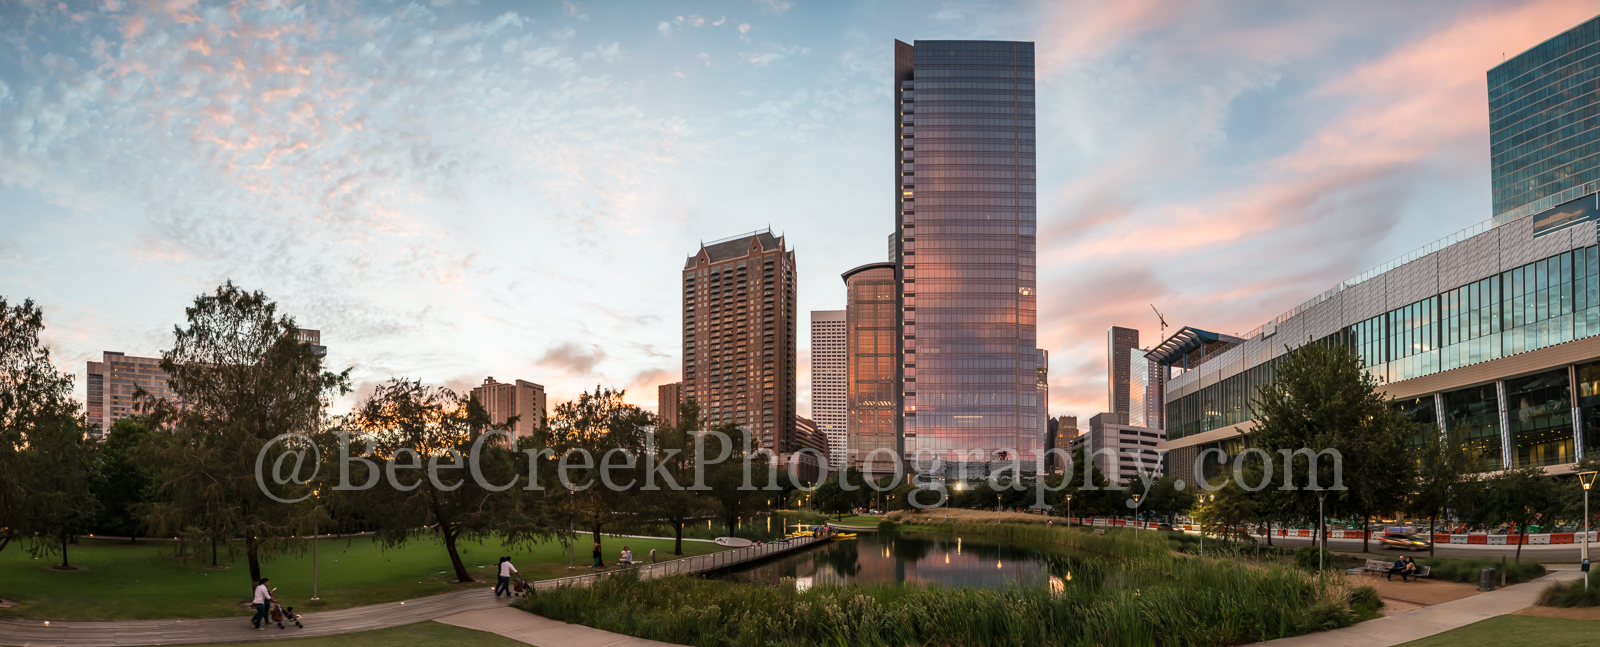 Discovery park, Houston, Marriot, building, city, cityscape, clouds, colors, downtown, high rise, pink, reflections, sky, skyline, sunset, photo